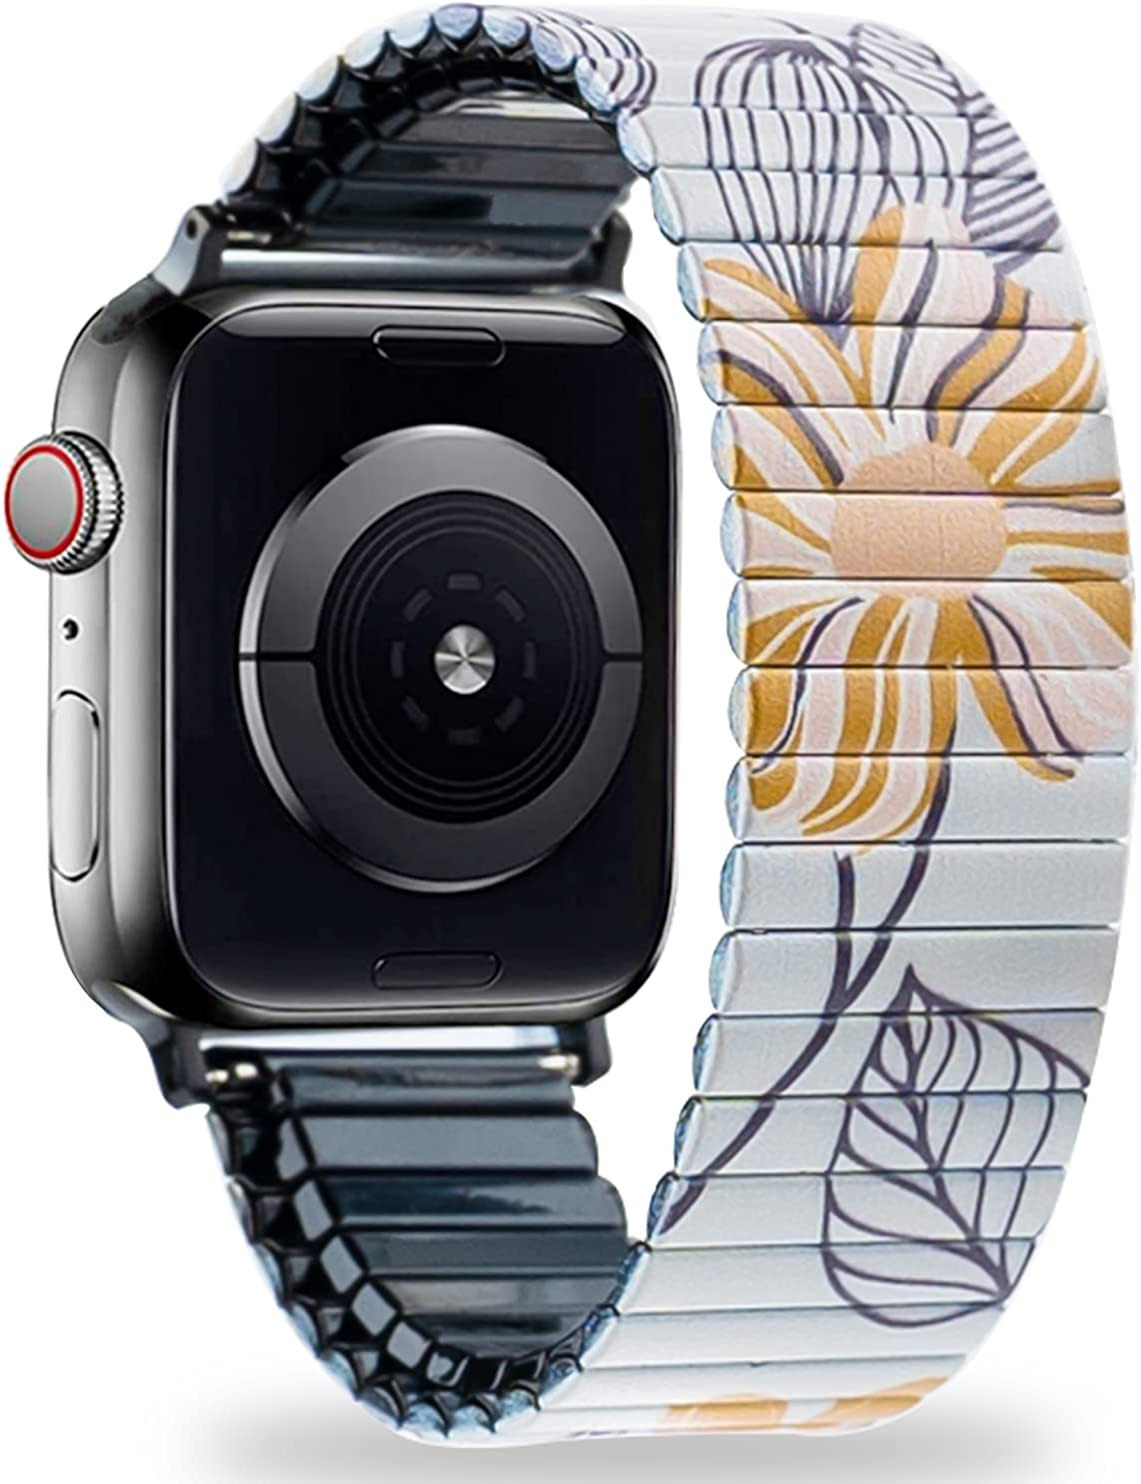 LEPASIVE Stretchy Band Stainless Steel Compatible with Apple Watch Series 38MM / 40MM, Metal Expansion Elastic Watchband with Cute Floral Print Replacement for Apple iWatch SE/6/5/4/3/2/1